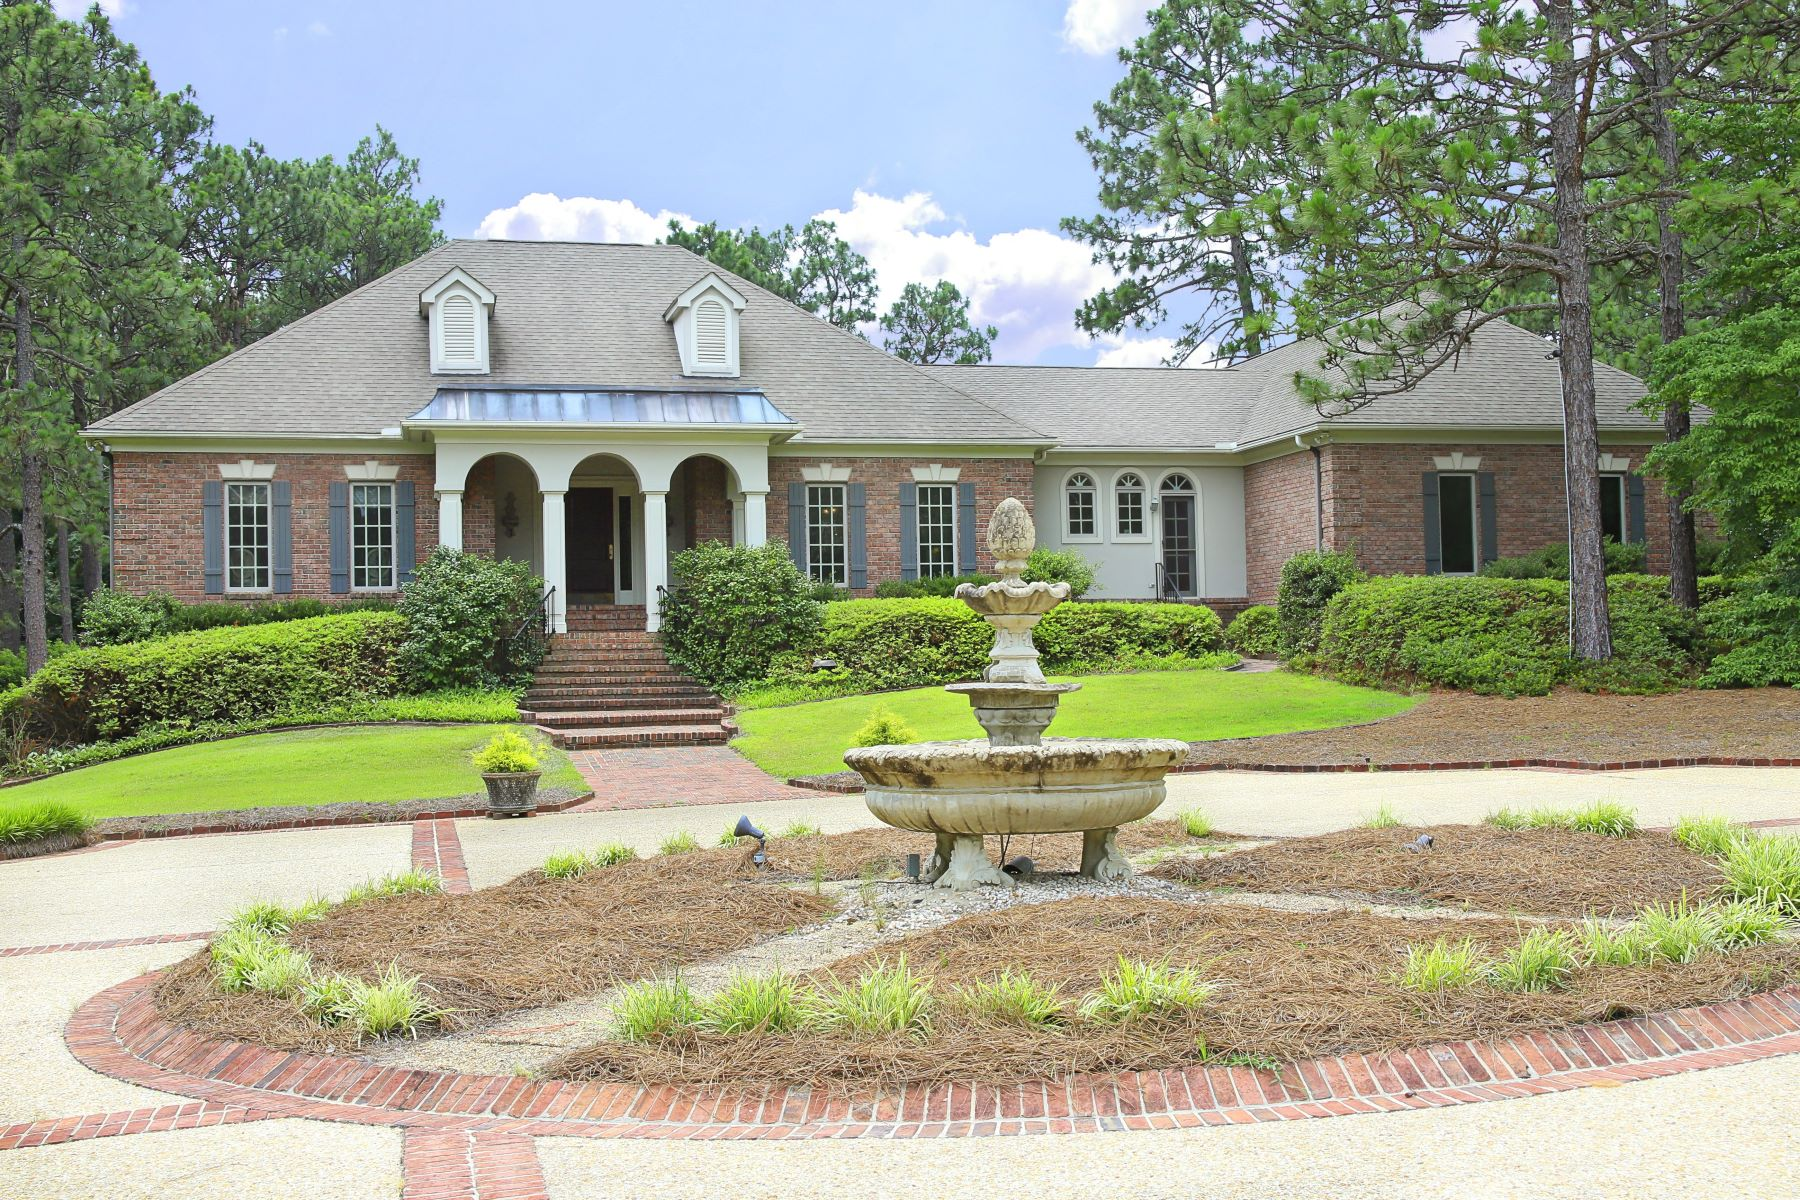 Single Family Homes for Active at Five Acre Transitional with Privacy and Appeal! 815 Lake Dornoch Drive Pinehurst, North Carolina 28374 United States